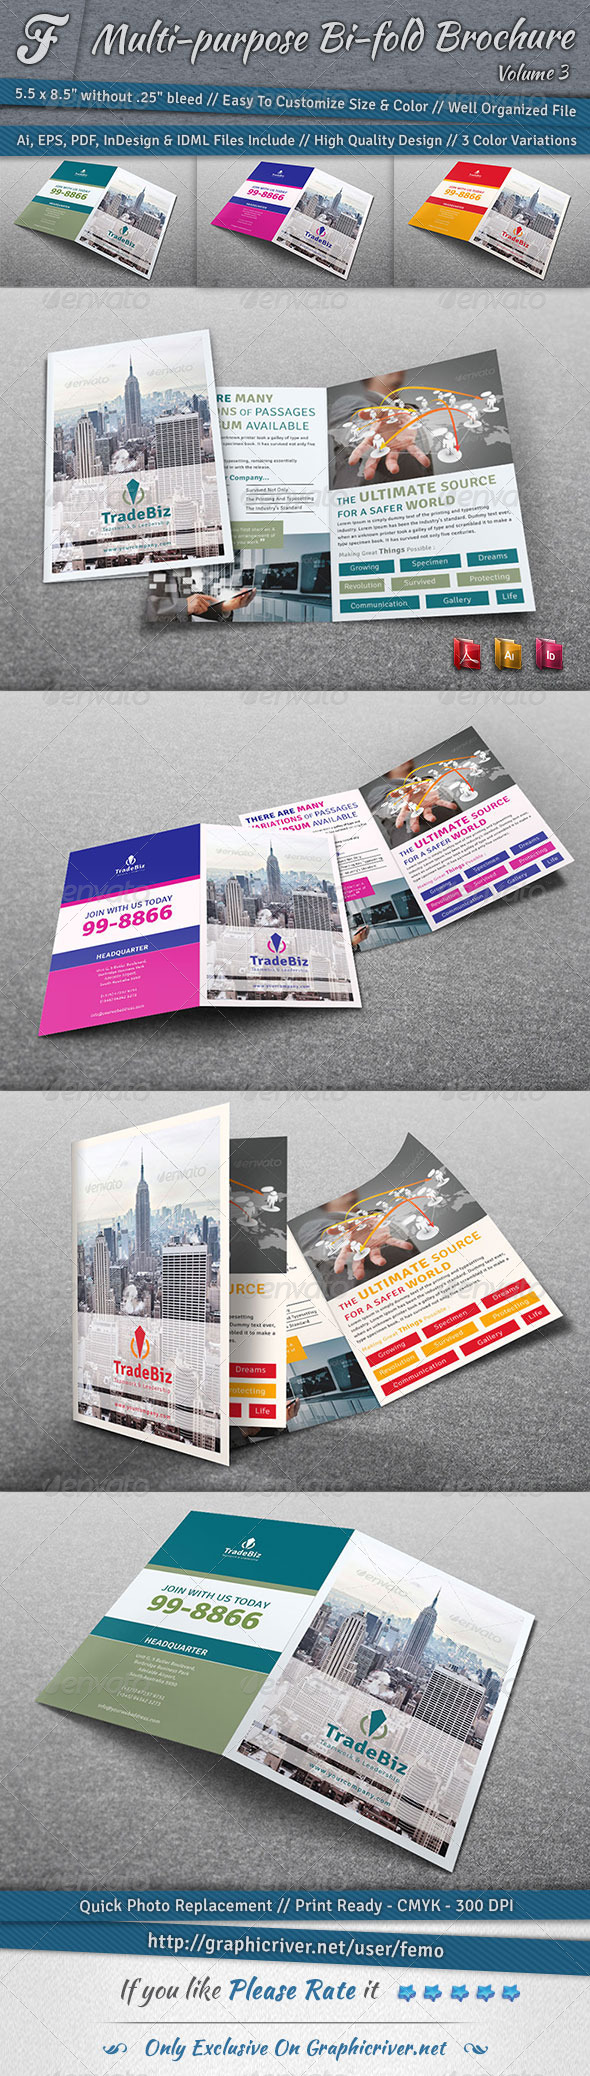 GraphicRiver Multi-purpose Bi-fold Brochure Volume 3 7070289